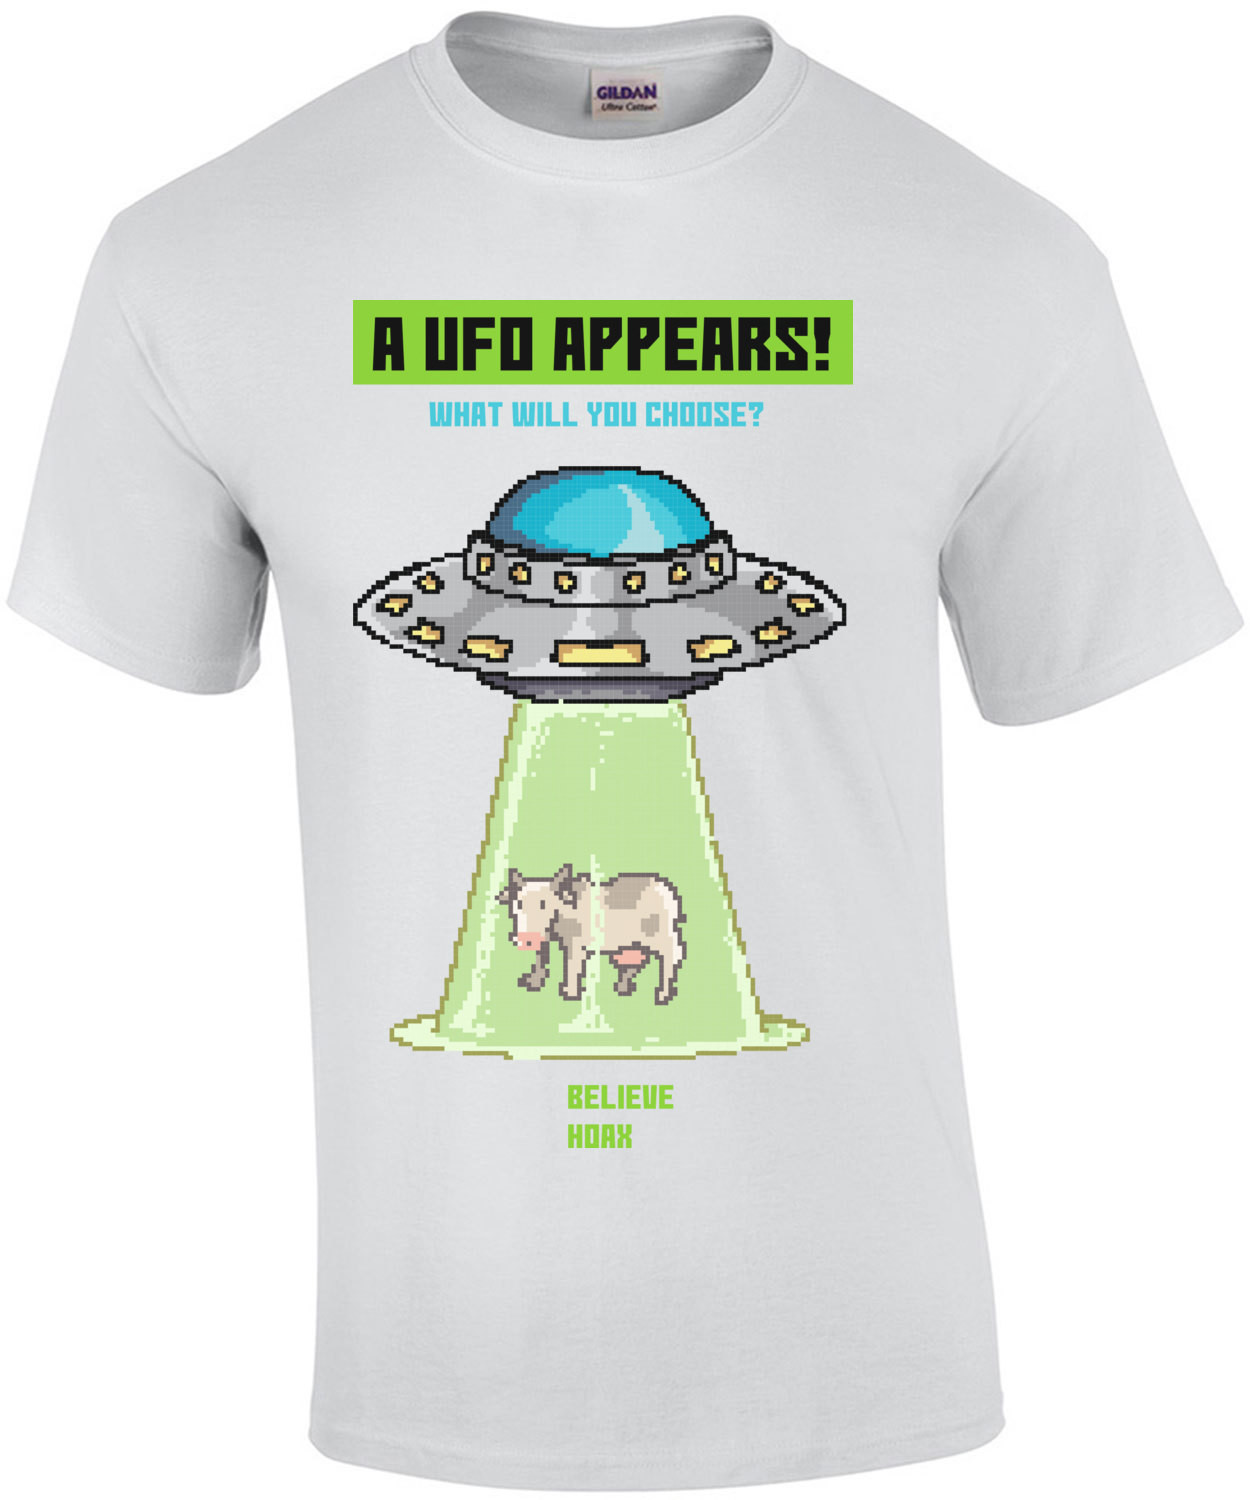 A Ufo Appears What Will You Choose Believe Or Hoax Retro T-Shirt